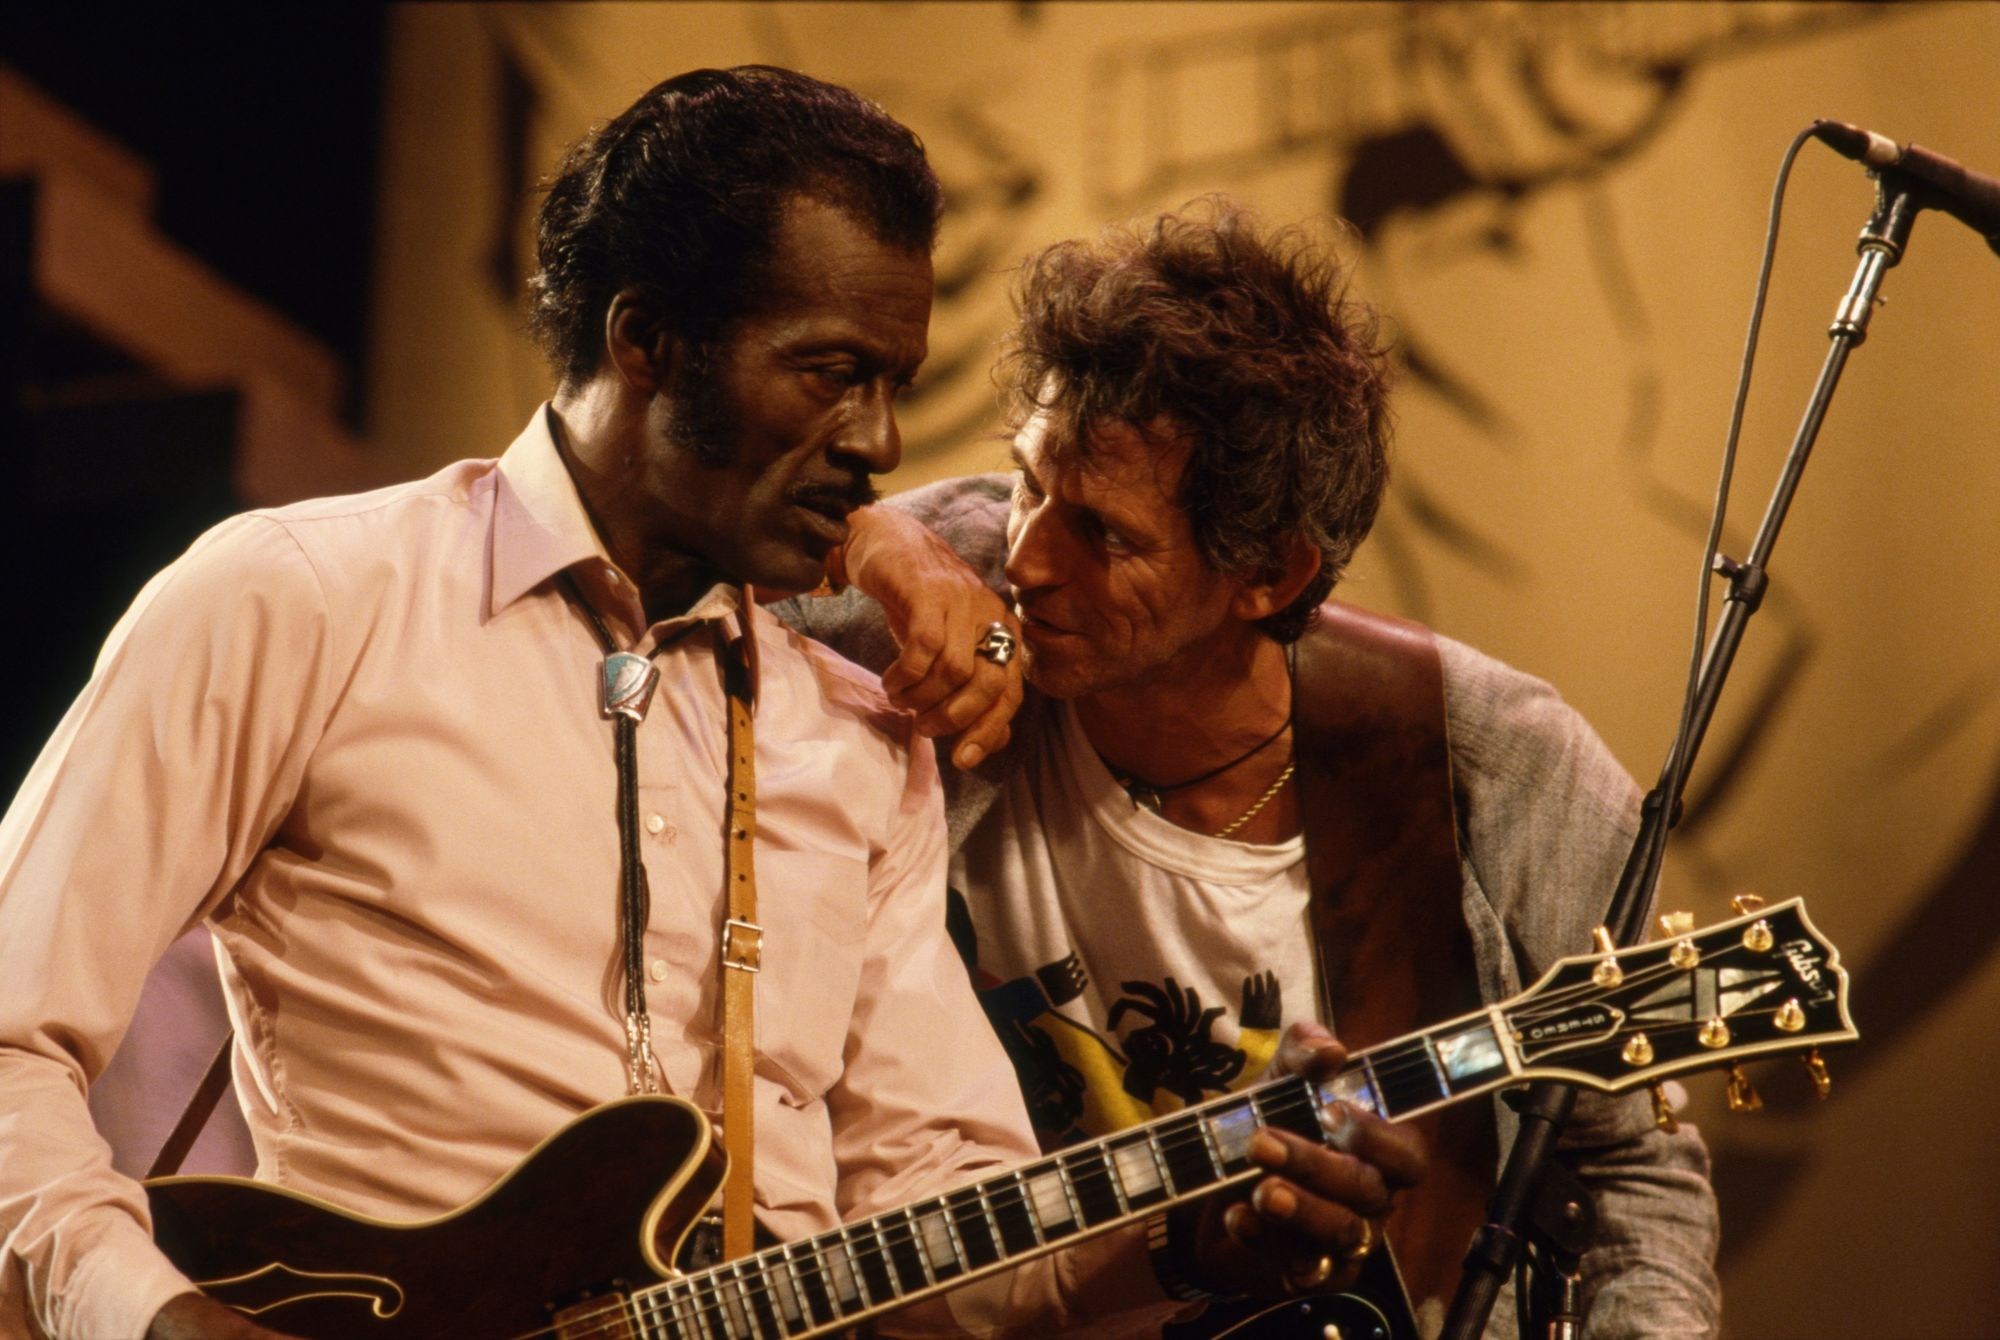 Chuck Berry and Keith Richards on stage, 1986.